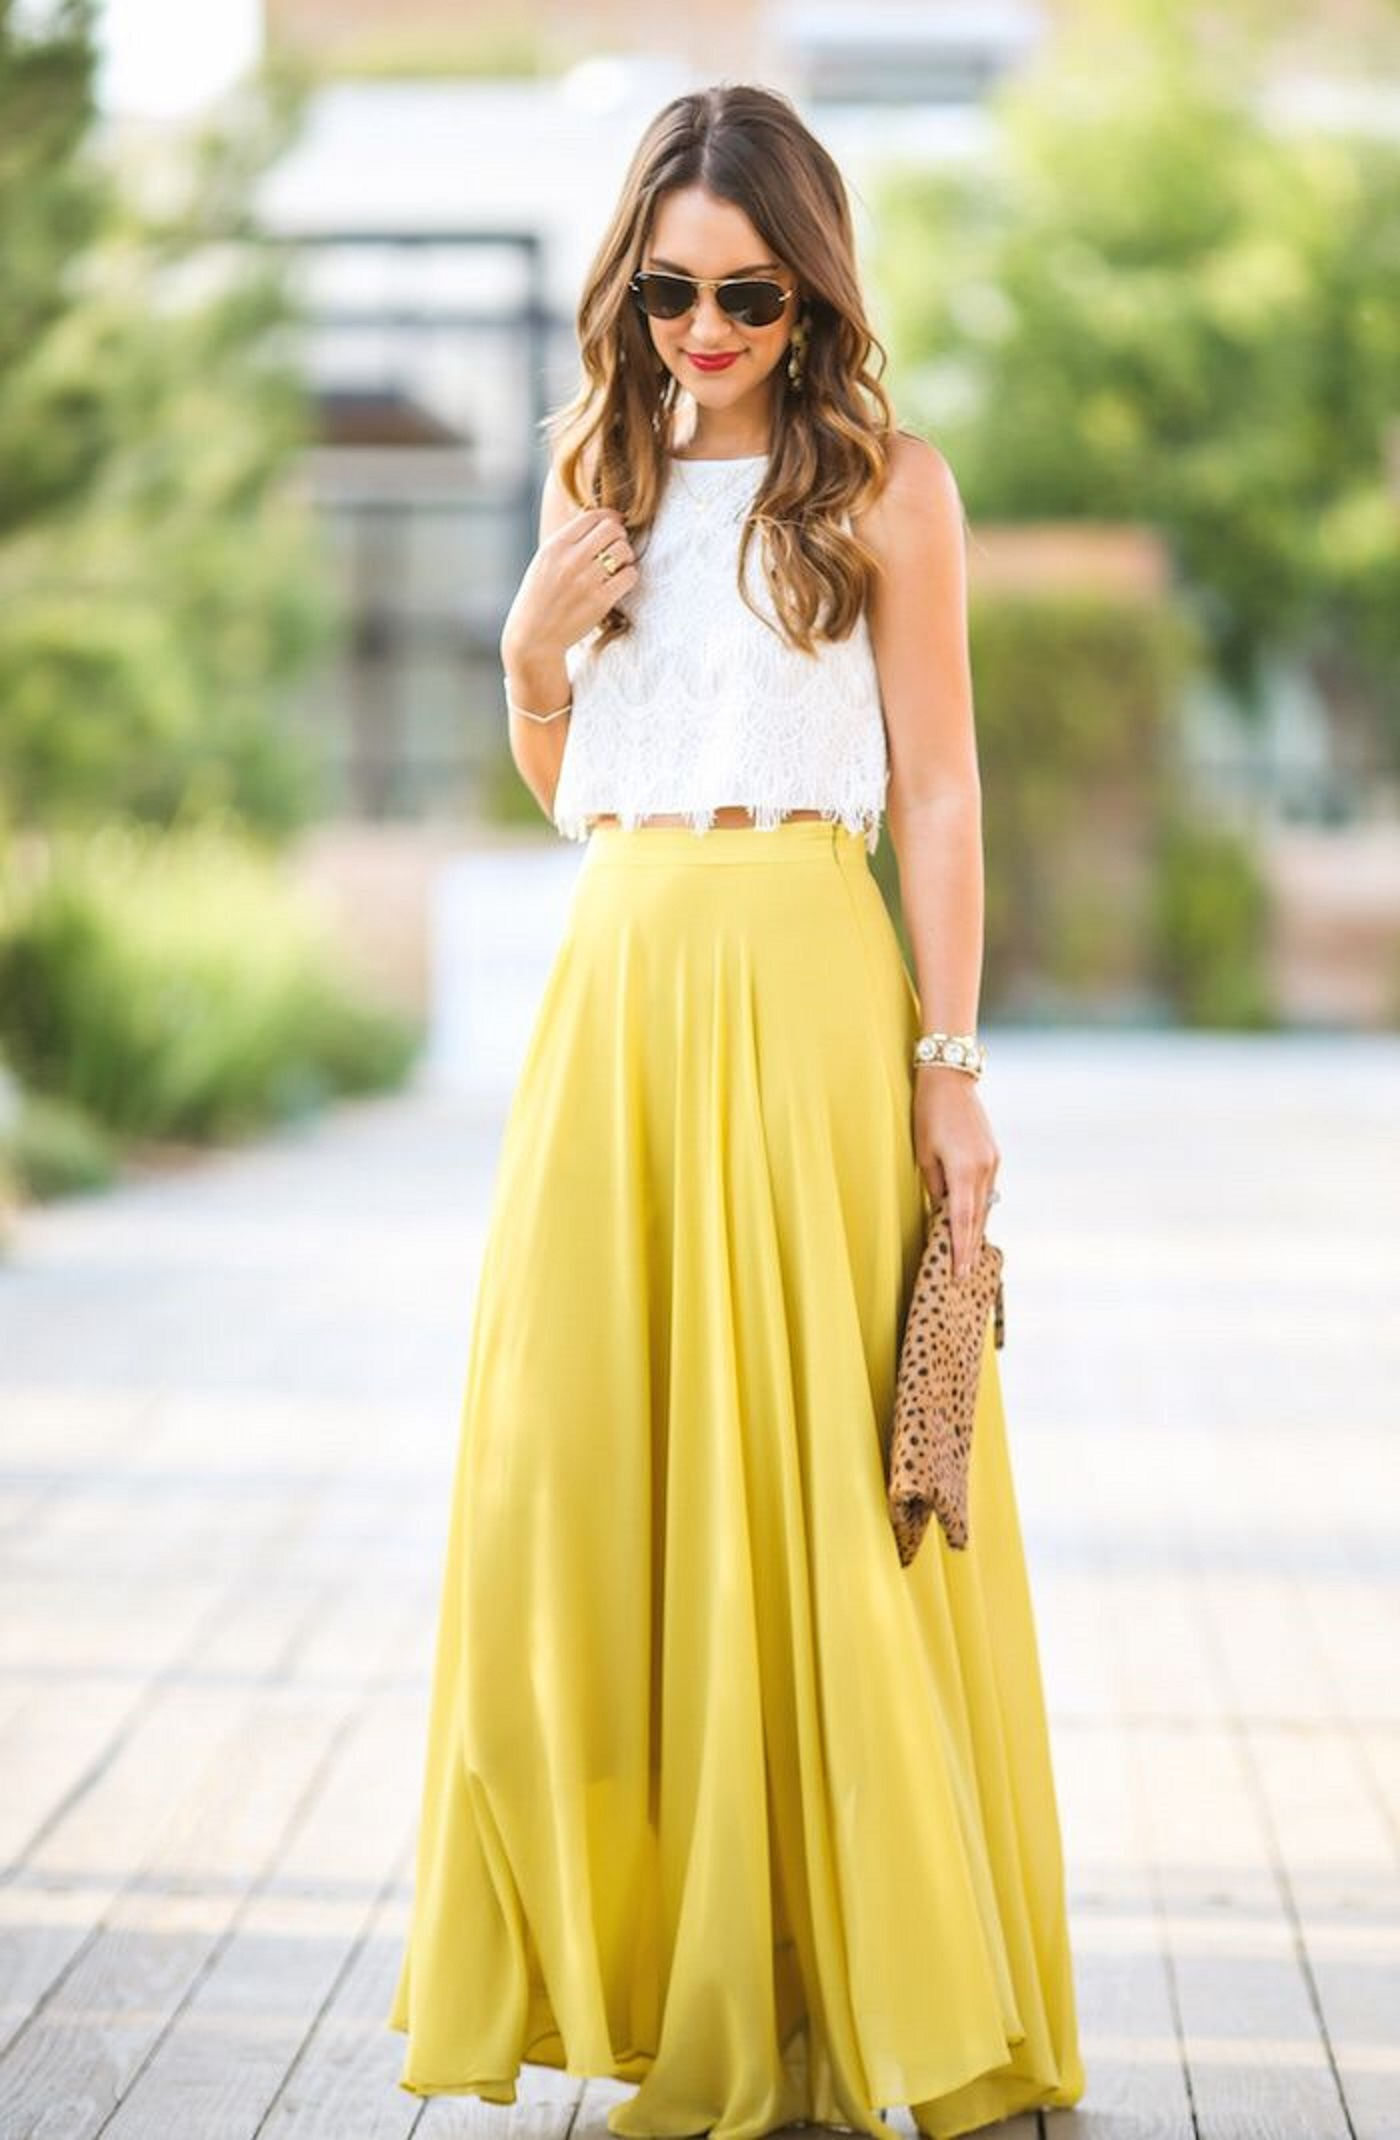 most flattering skirt length